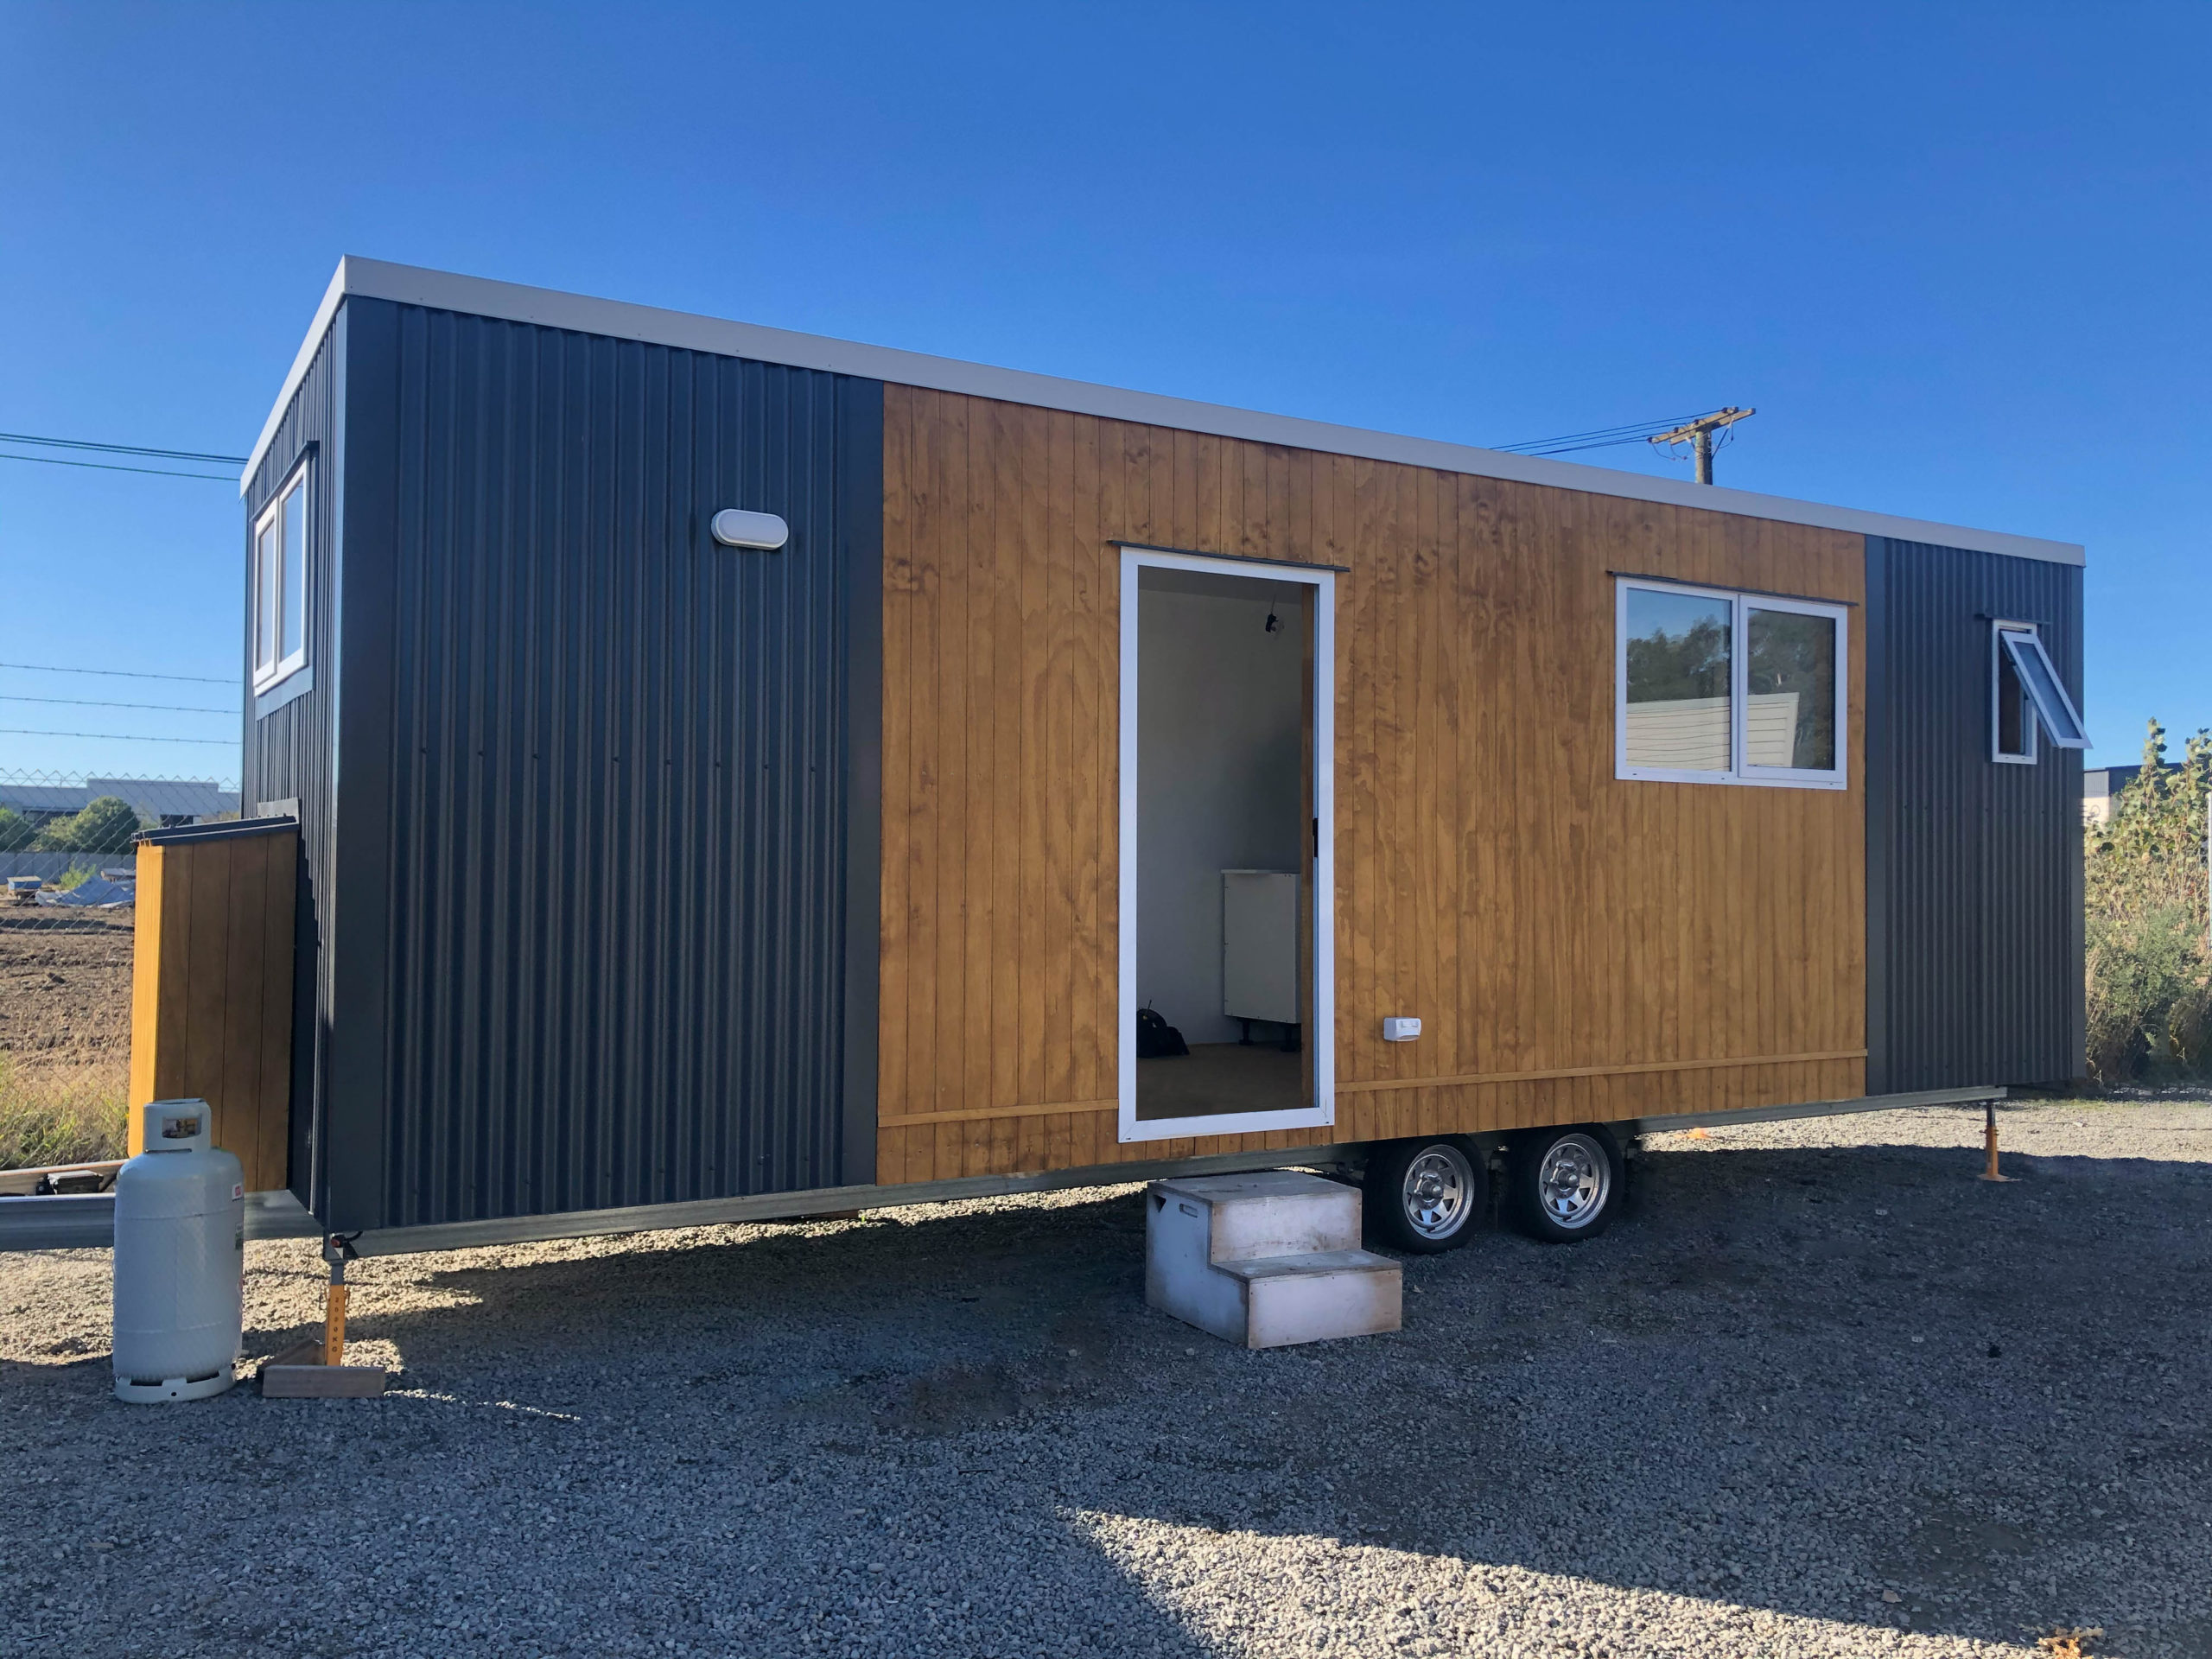 FAQs about Tiny Houses